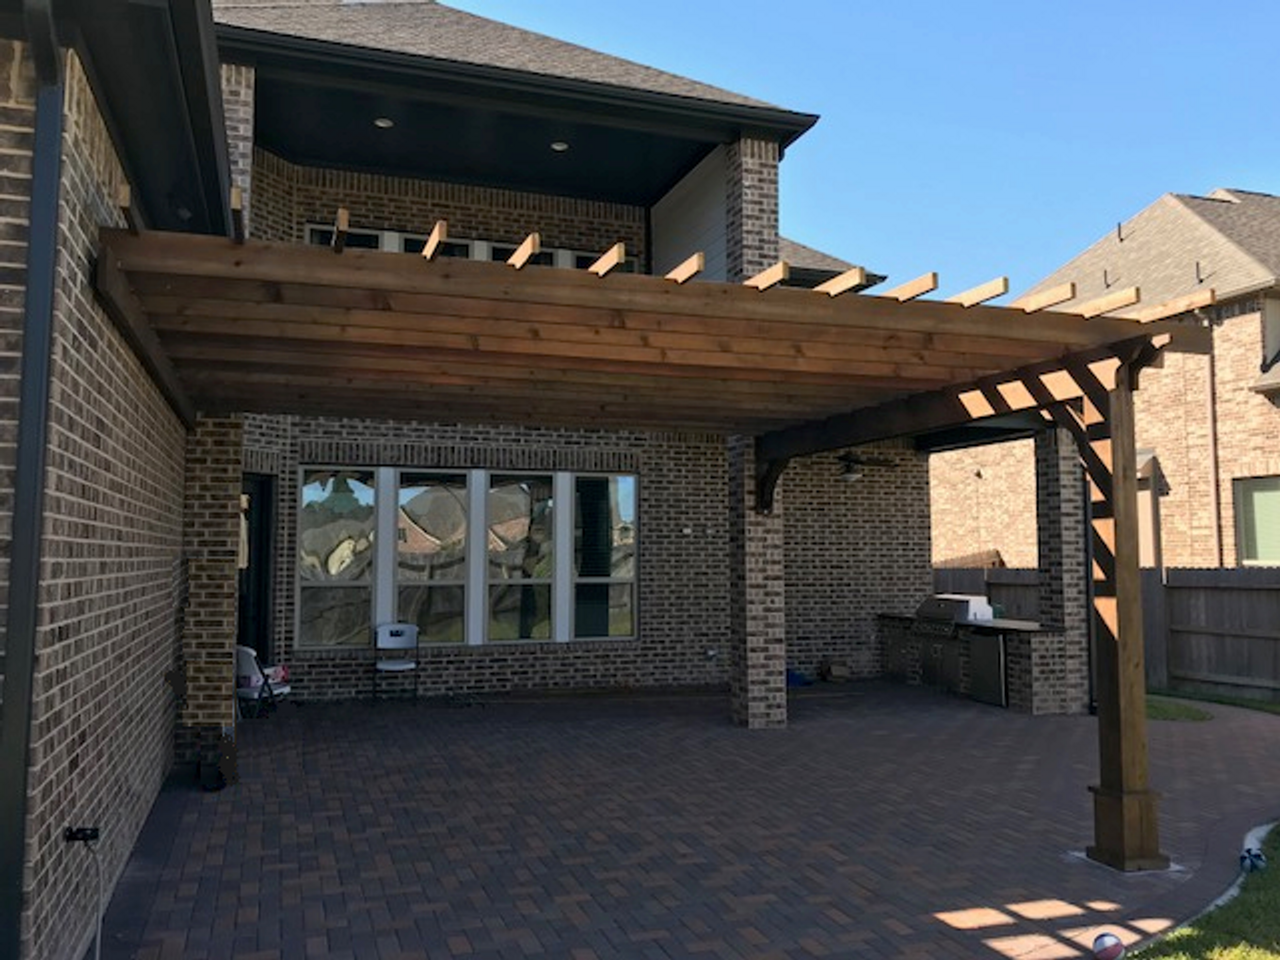 15x17 Classic Pergola Kit / wall mounted / 8in square posts, 10ft tall / Walnut stain / 2x12 beams, 2x8 rafters, 2x4 top runners / Straight cut ends on rafters and top runners / Spring, TX